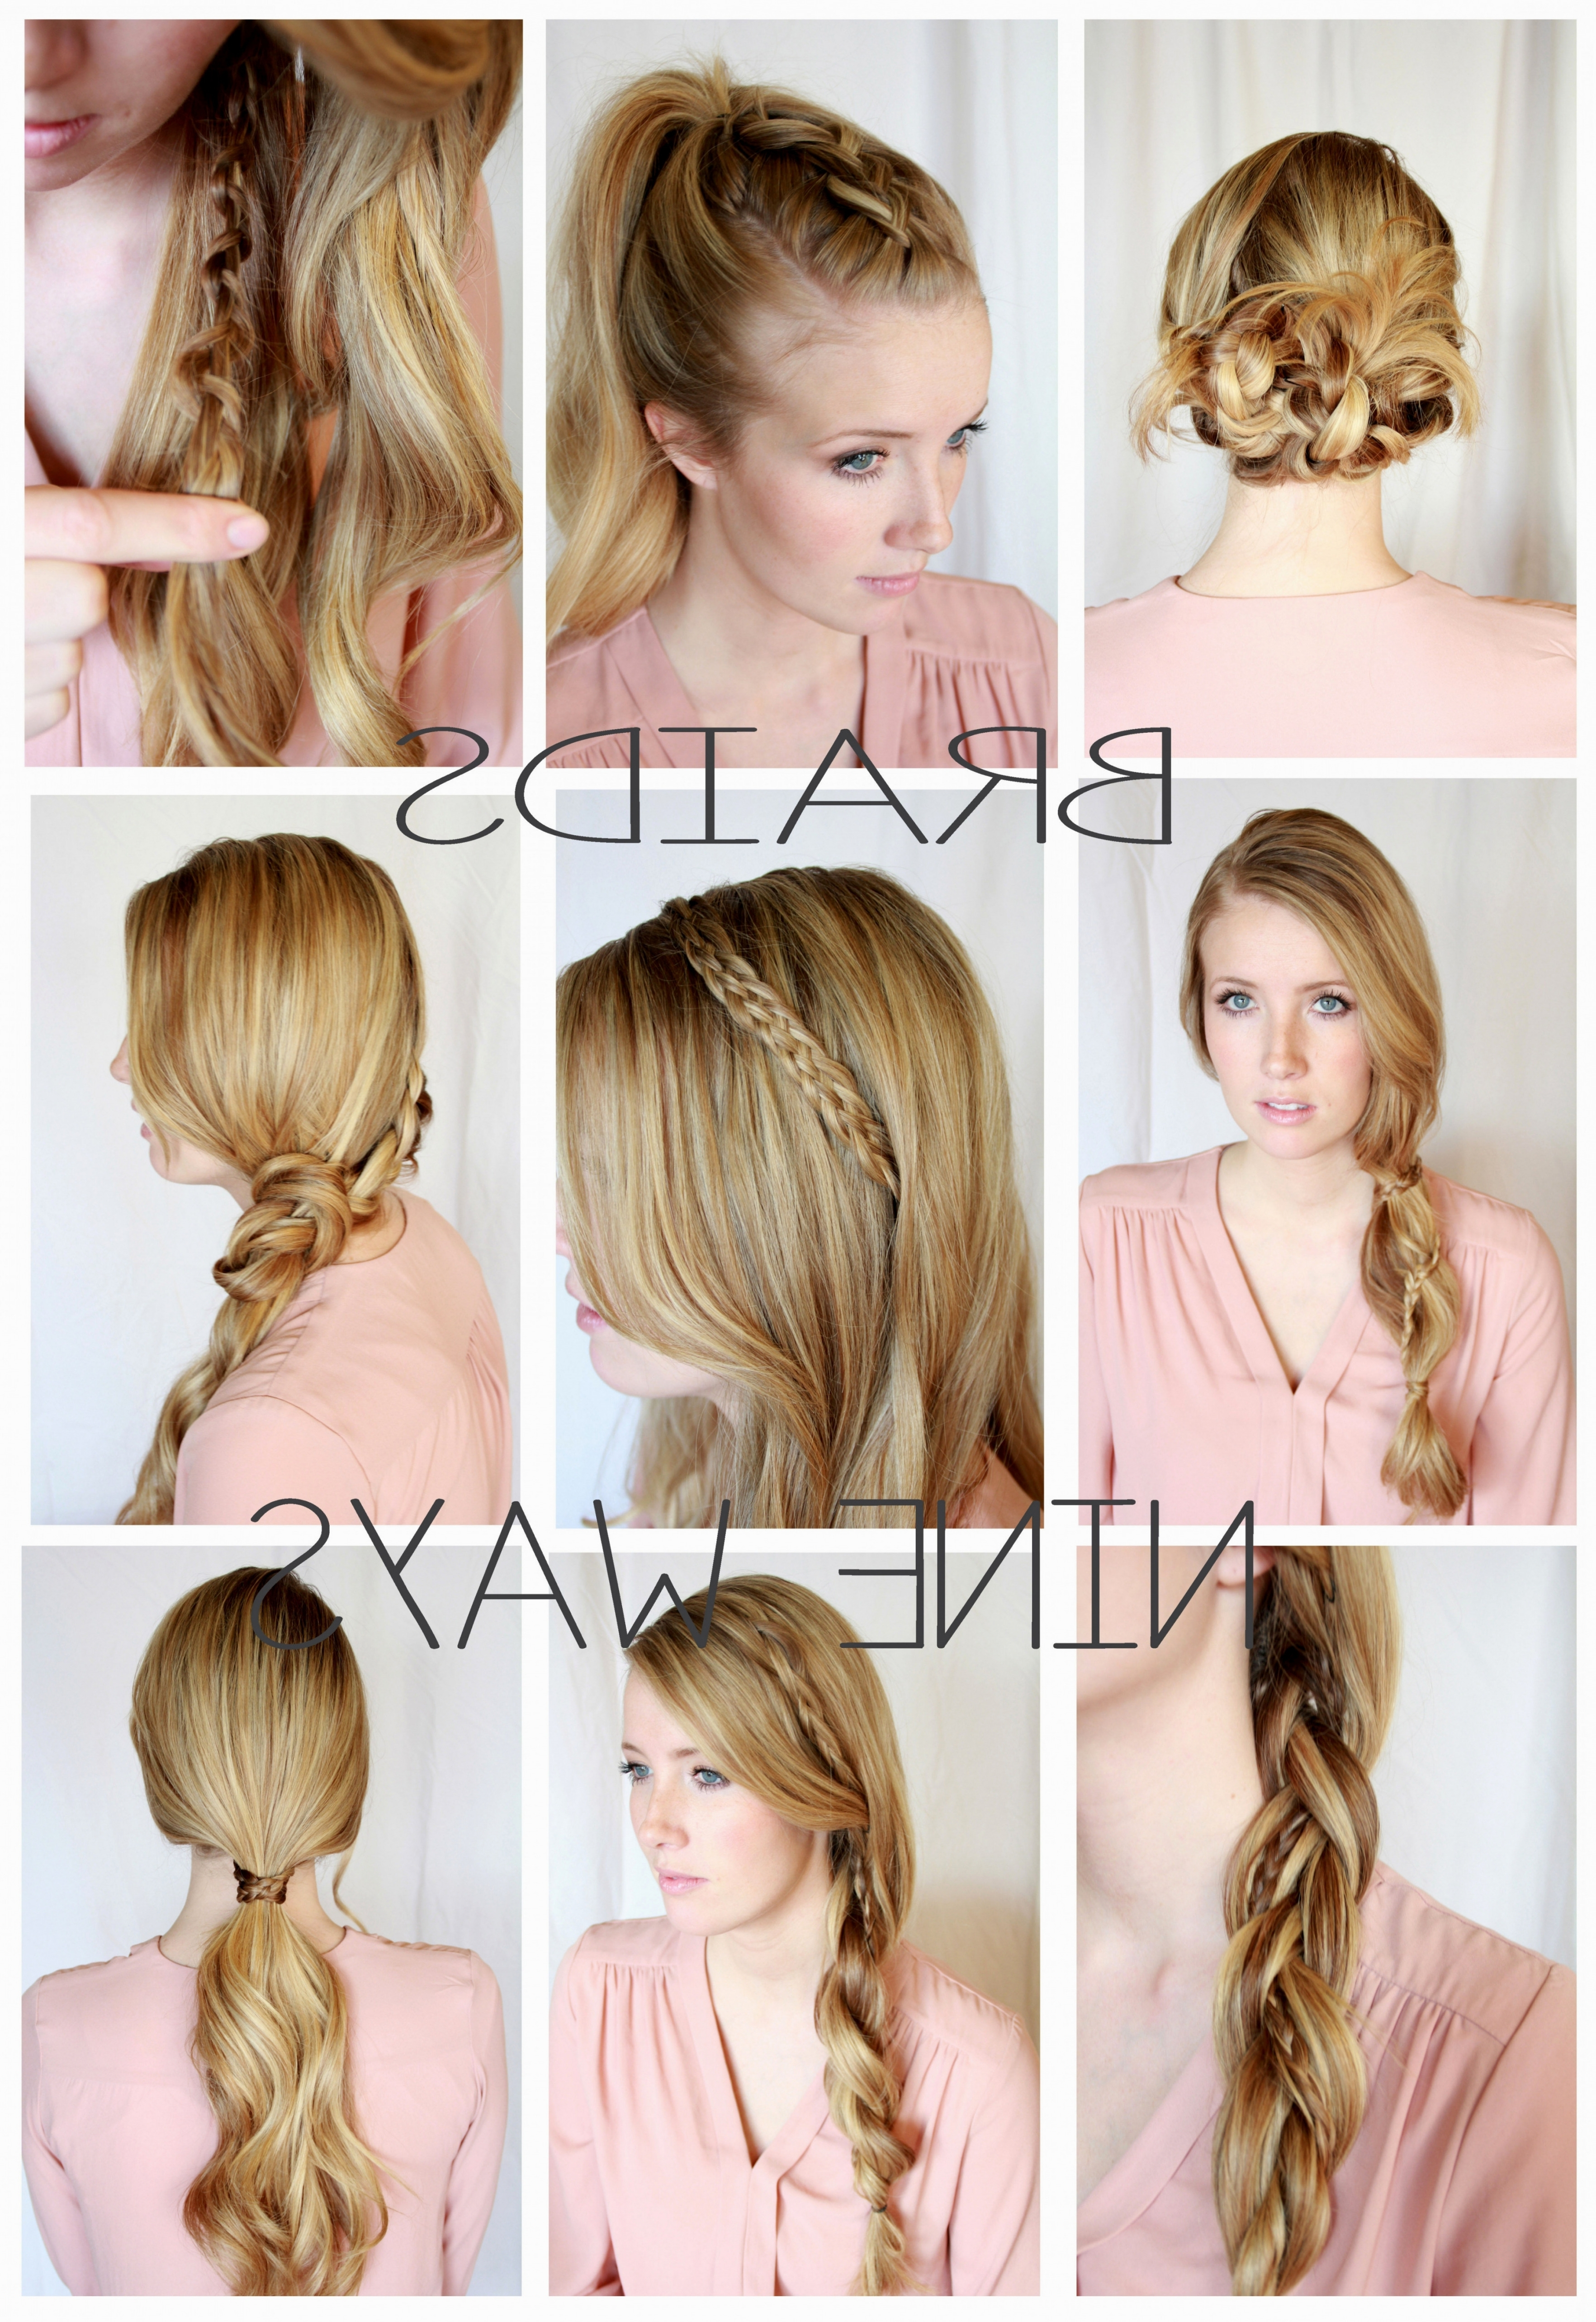 Well Known Cute Braided Hairstyles For Cute Easy Braided Hairstyles Collection Of Solutions Cute Braid (View 12 of 15)